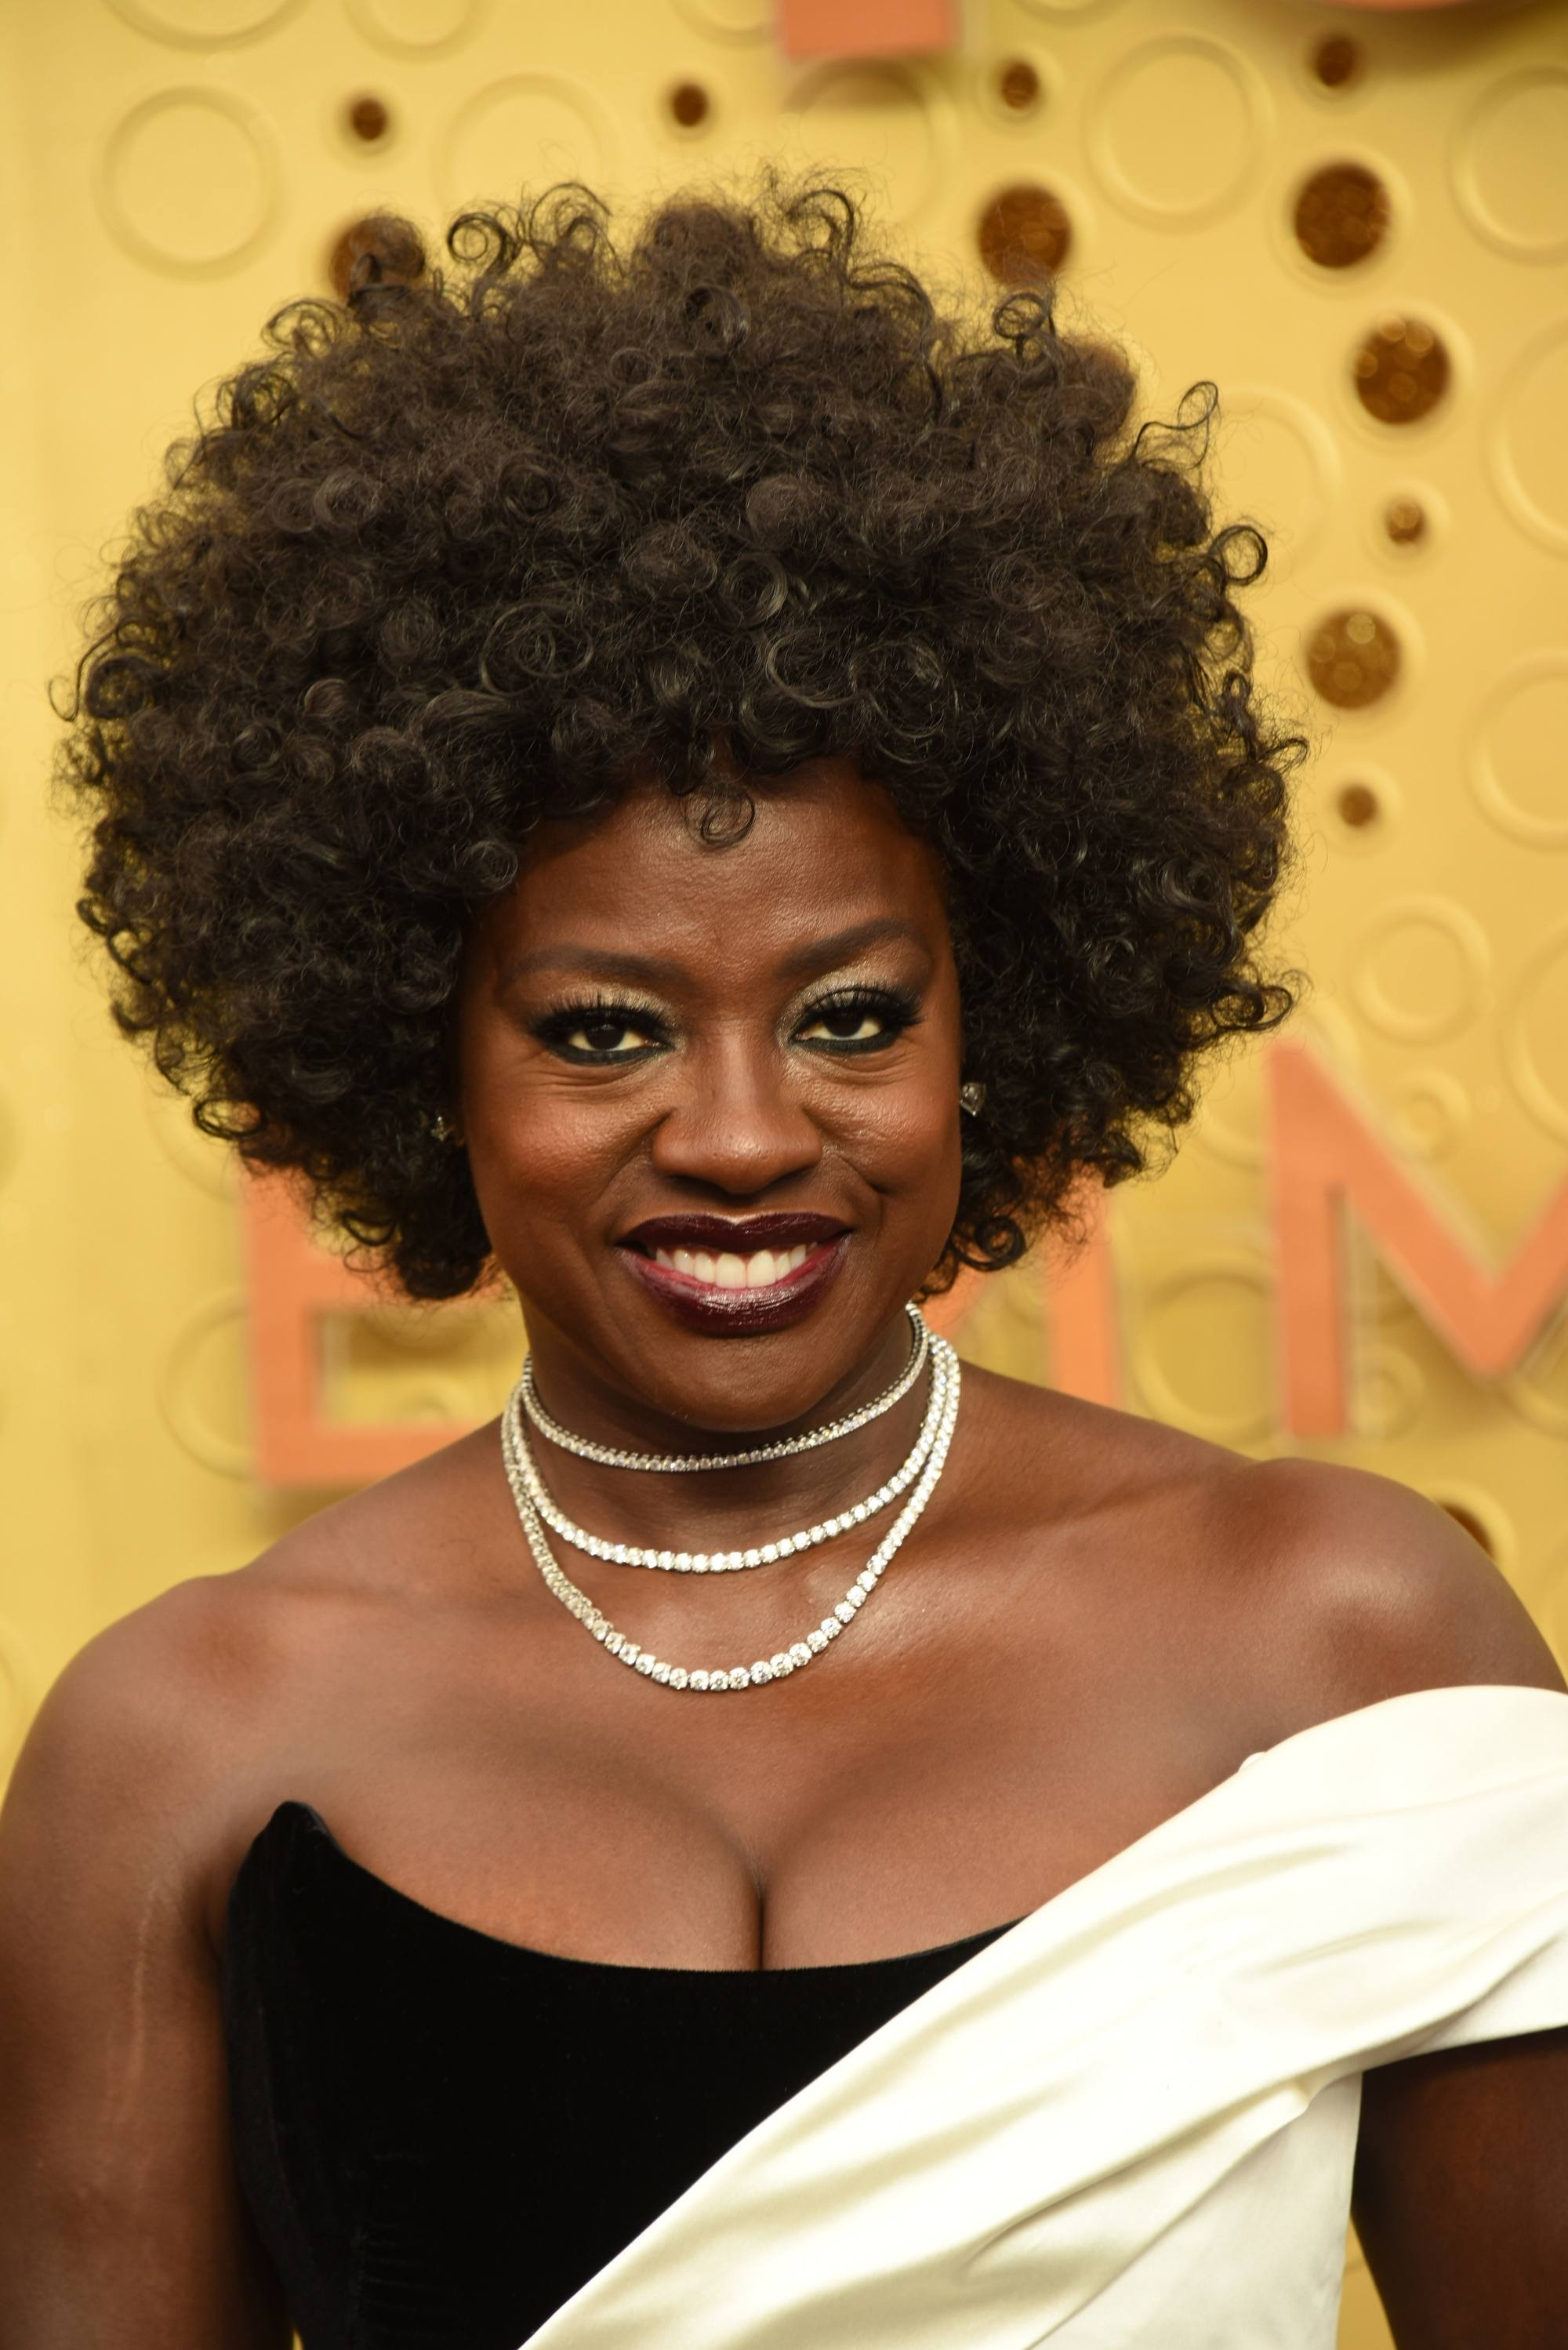 Emmy Awards 2019 Best Hairstyles: Viola Davis with her curly afro